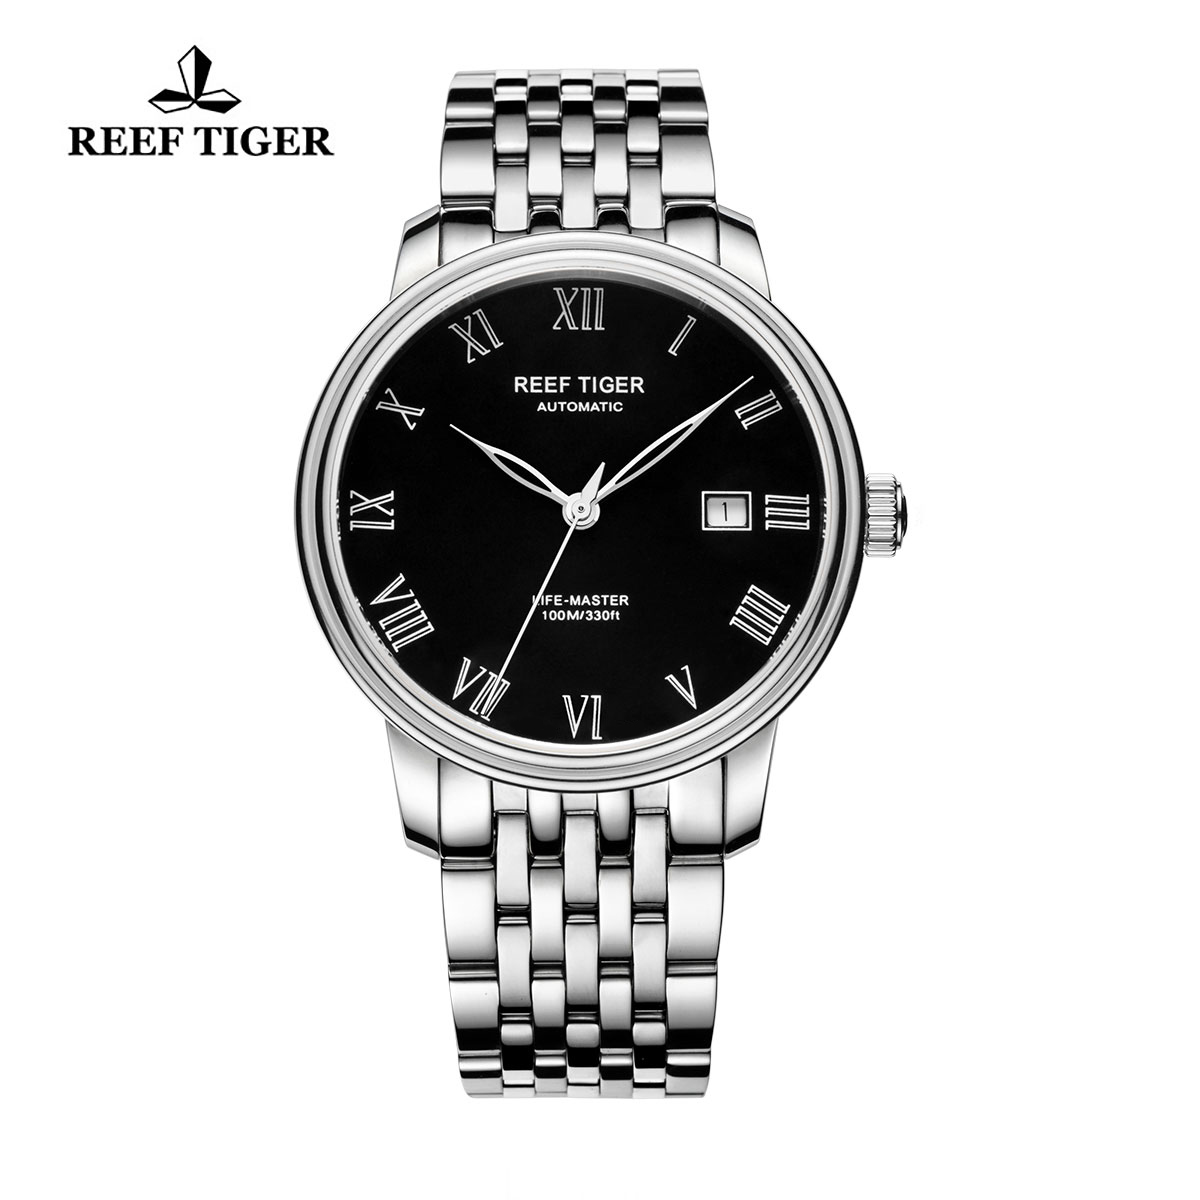 Reef Tiger Life-Master Dress Watch Automatic Full Steel with Black Dial RGA812-YBY